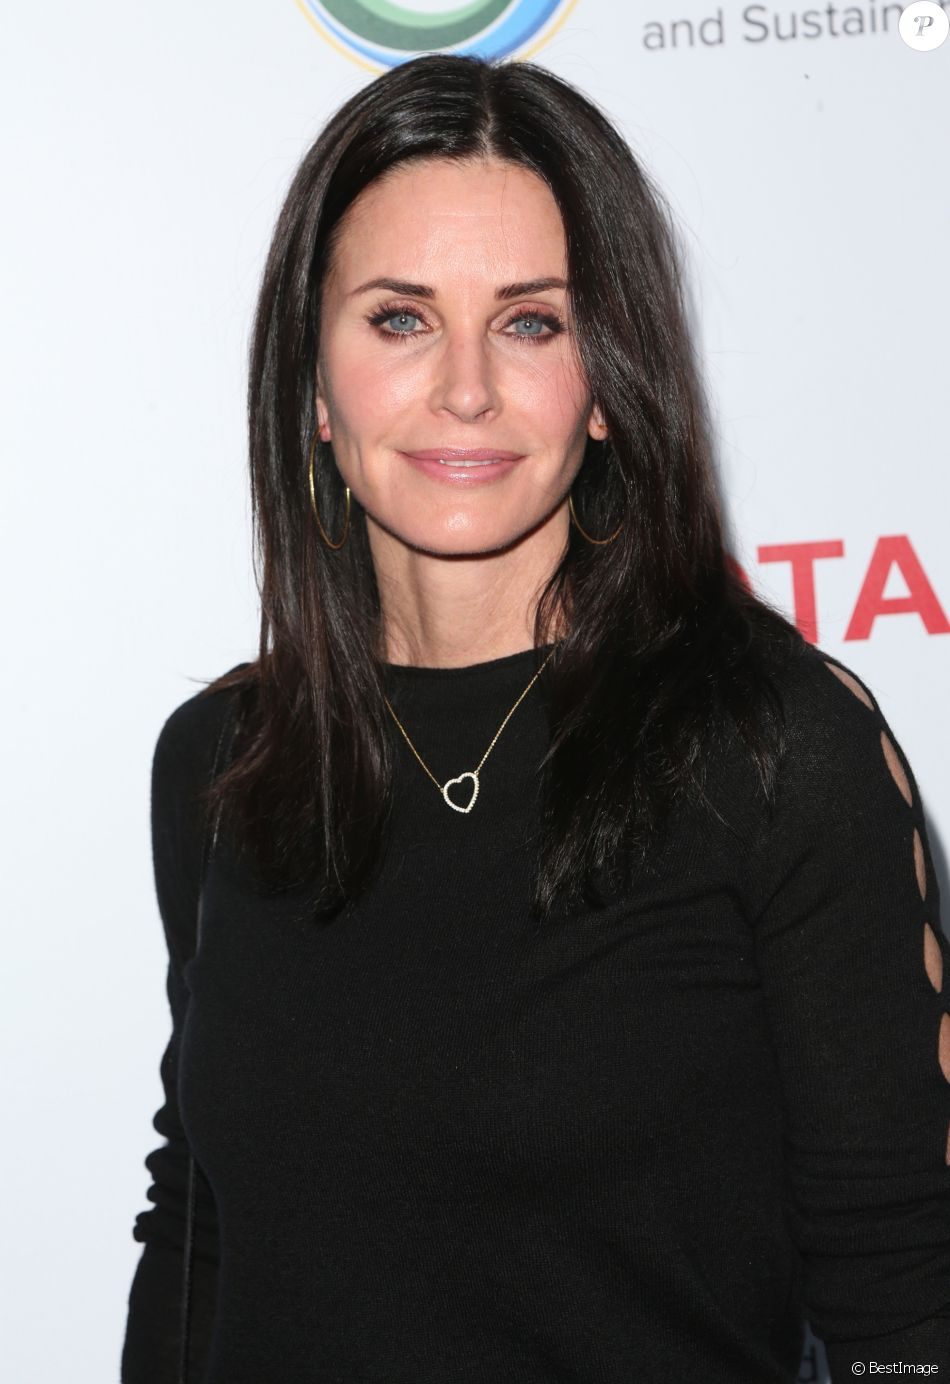 Courteney Cox à la soirée UCLA (Institute Of The Environment And Sustainability Celebrates Innovators For A Healthy Planet) à Beverly Hills, le 14 mars 2017 © AdMedia via Zuma/Bestimage